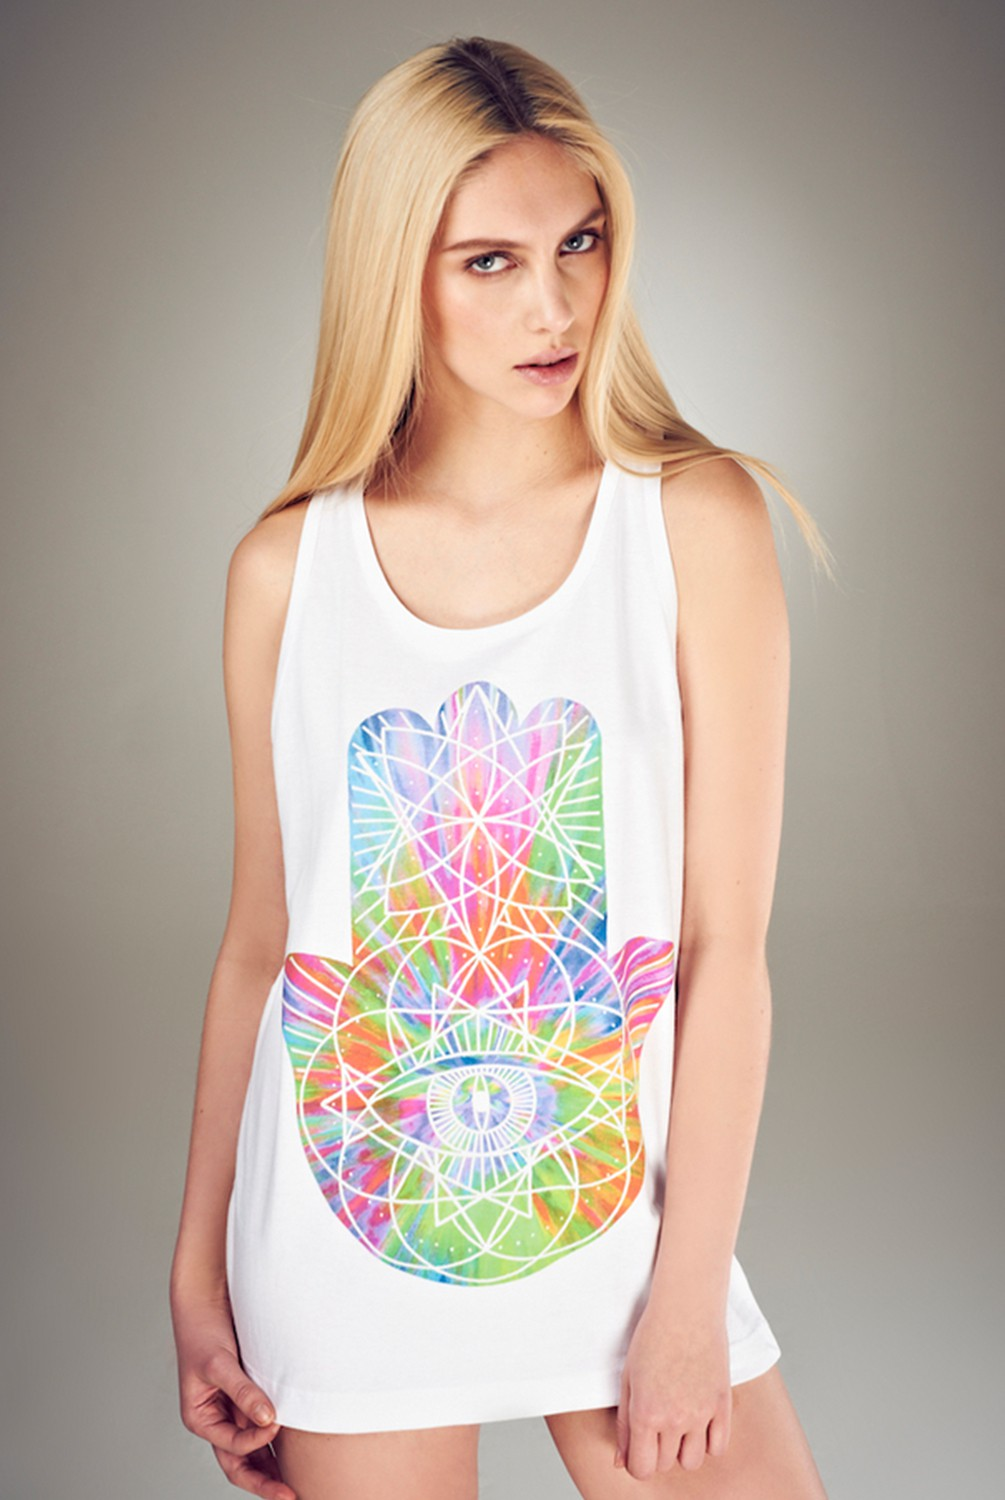 Image of IamVibes yoga tank top -M